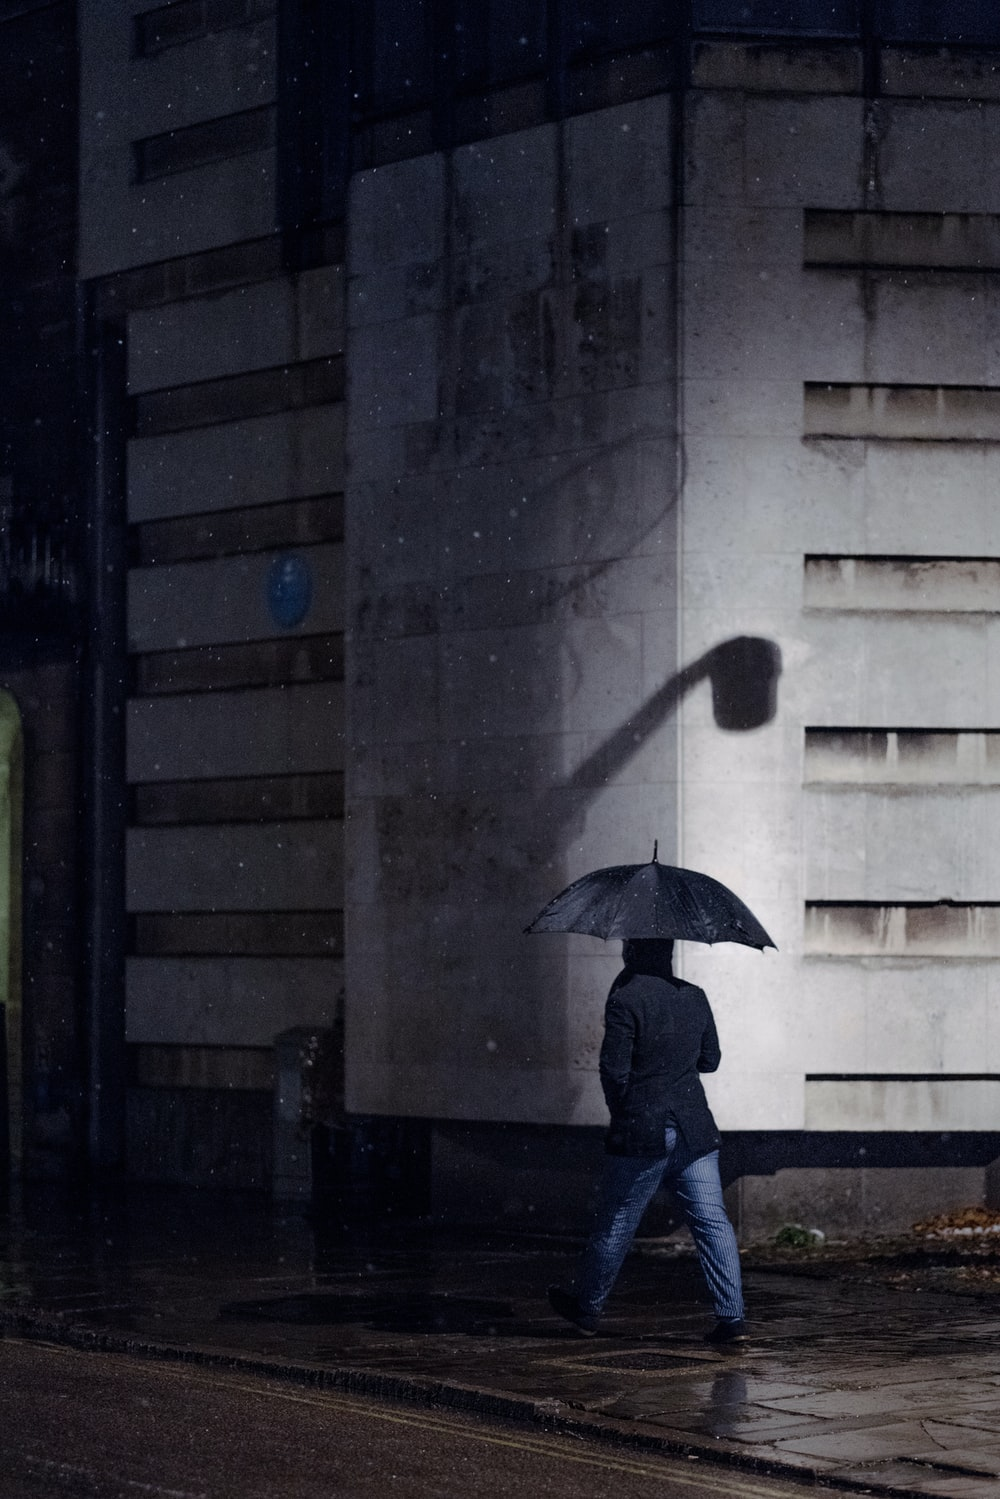 man walking under his umbrella